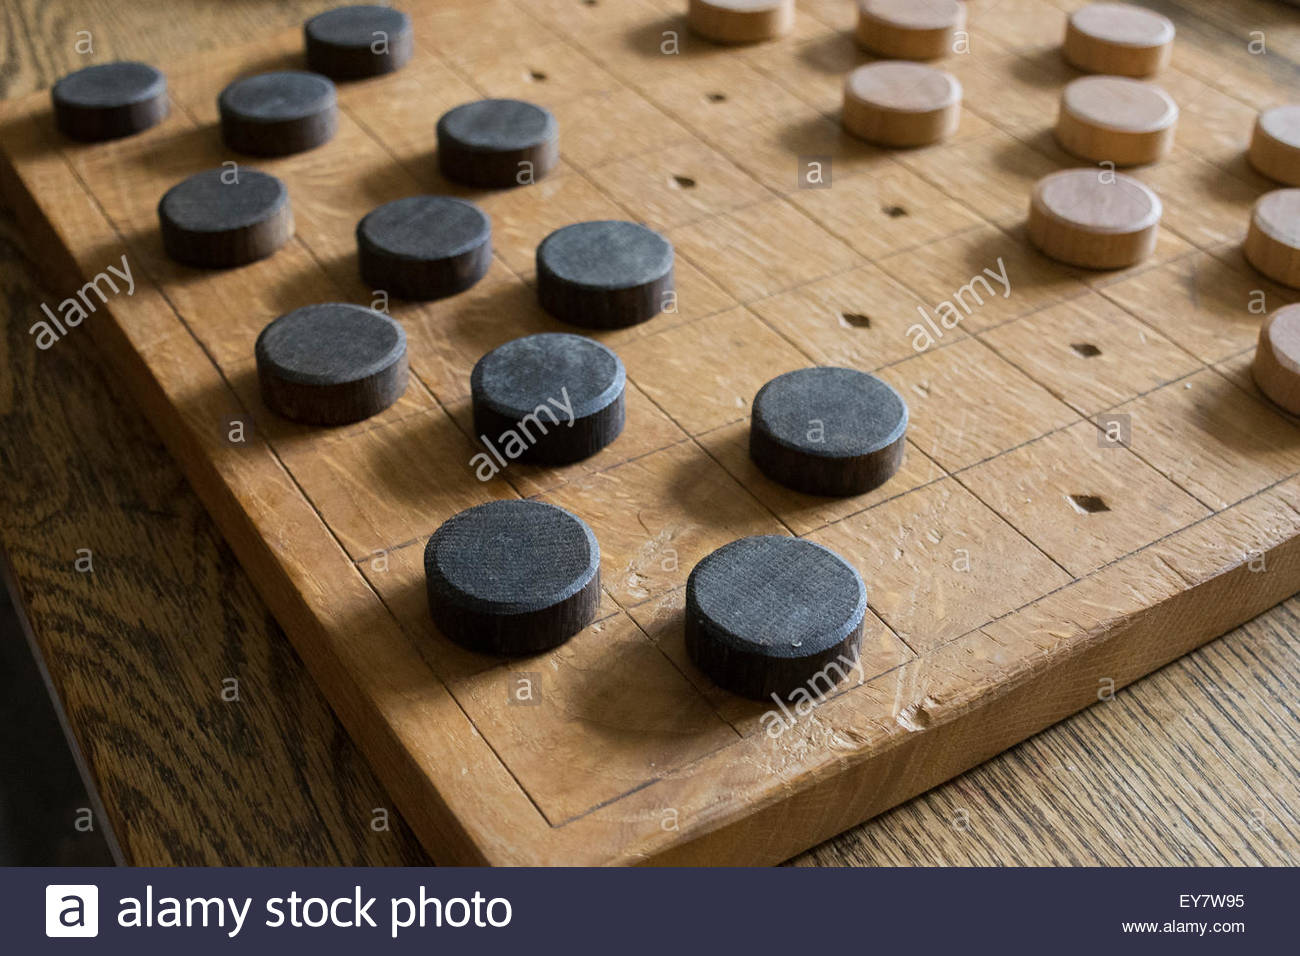 A wooden draughts board and pieces resting on a wooden table - Stock Image